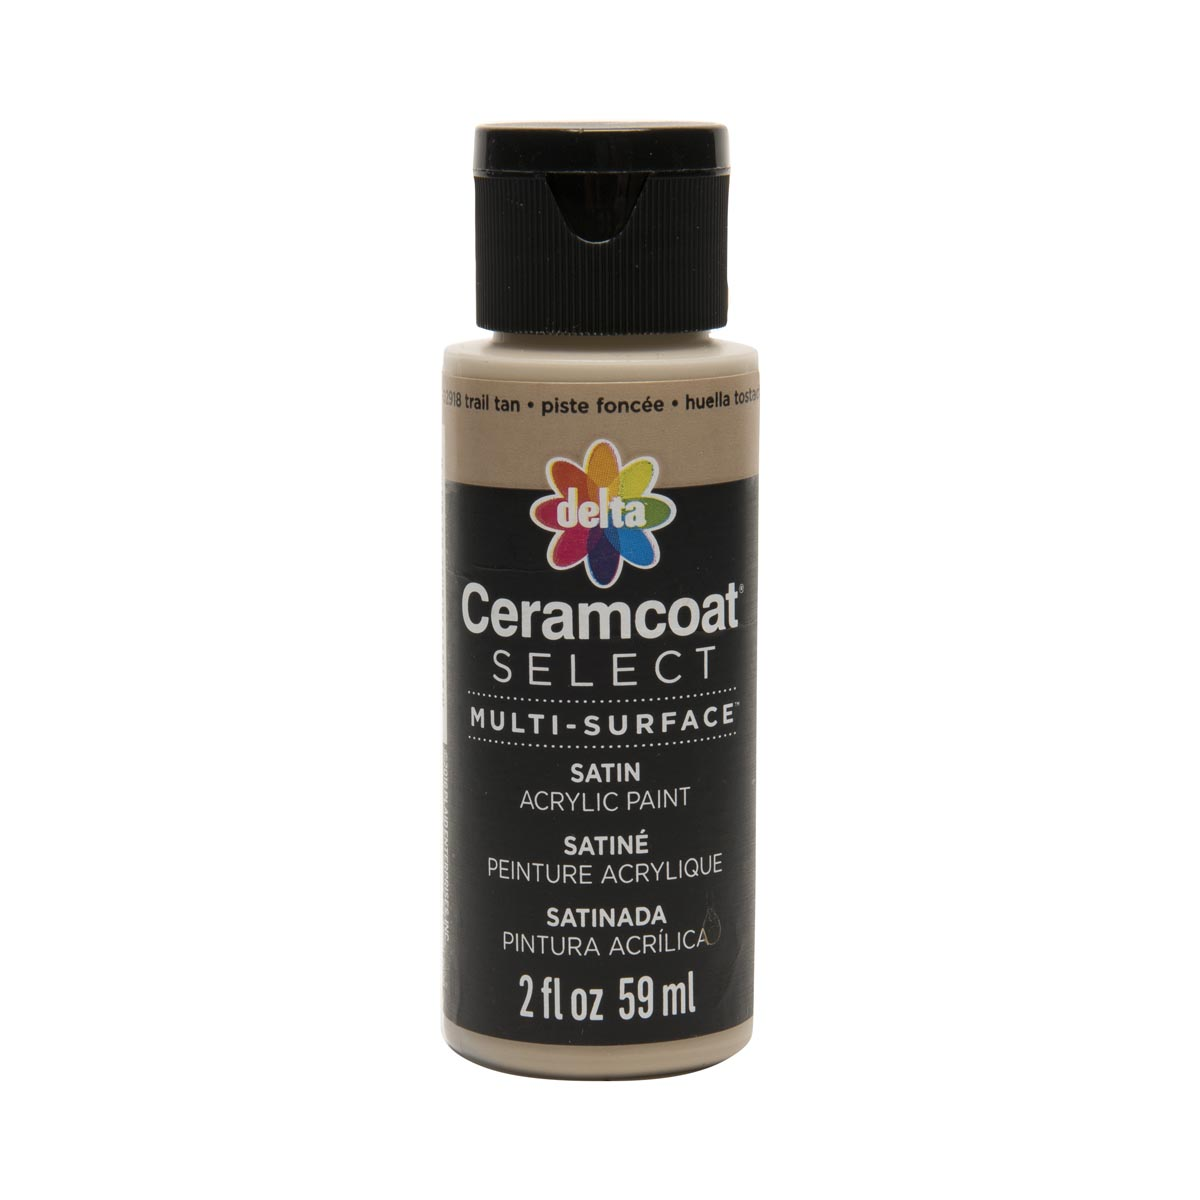 Delta Ceramcoat ® Select Multi-Surface Acrylic Paint - Satin - Trail Tan, 2 oz.